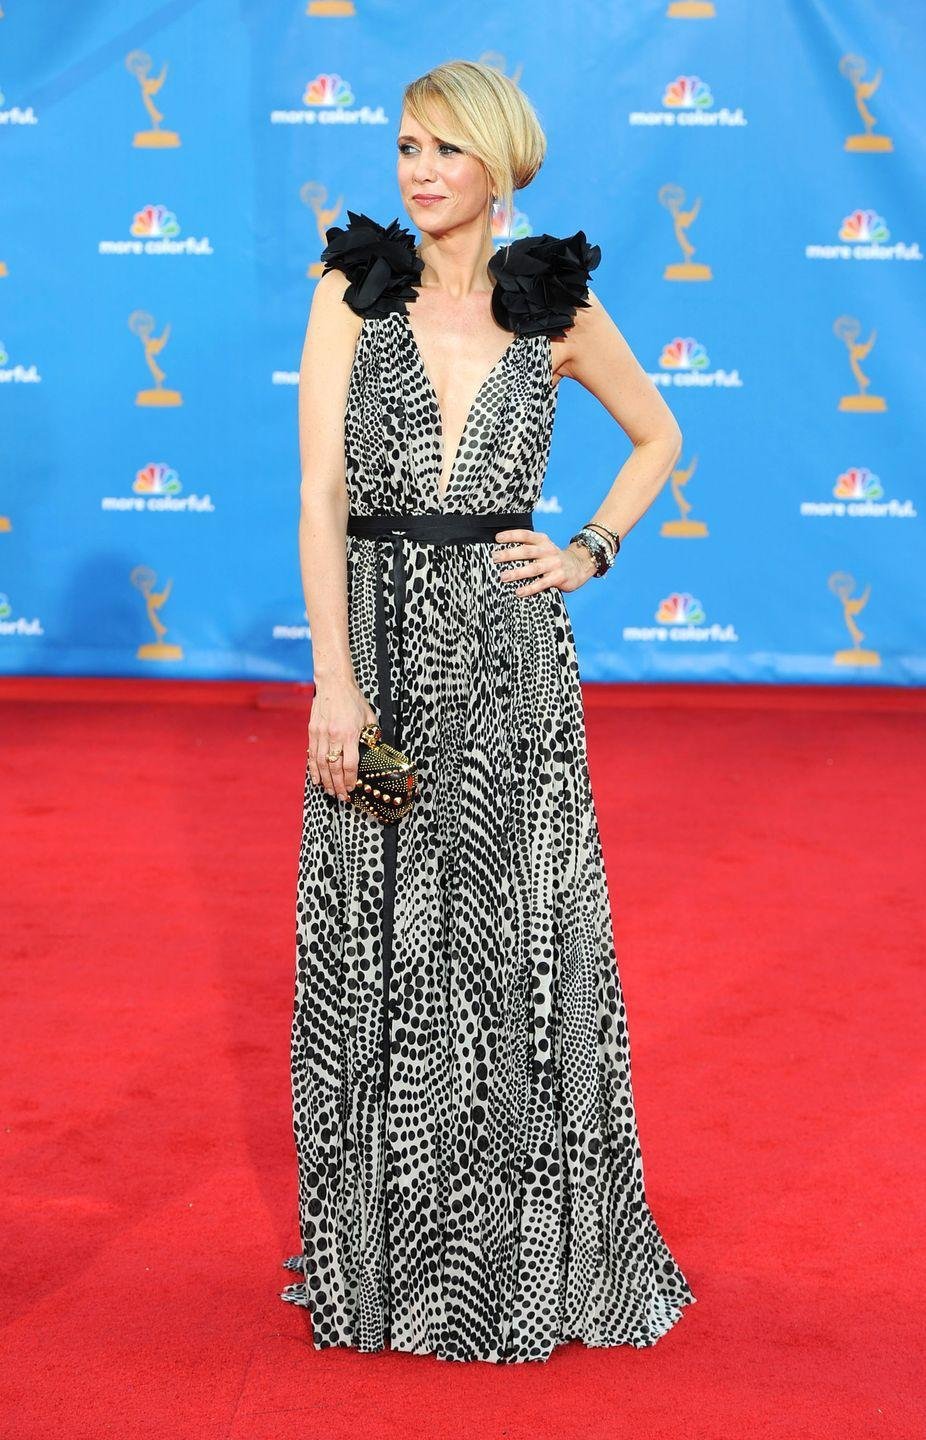 <p>Wiig stood out in this printed floor-length dress at the Emmy Awards in 2010.</p>